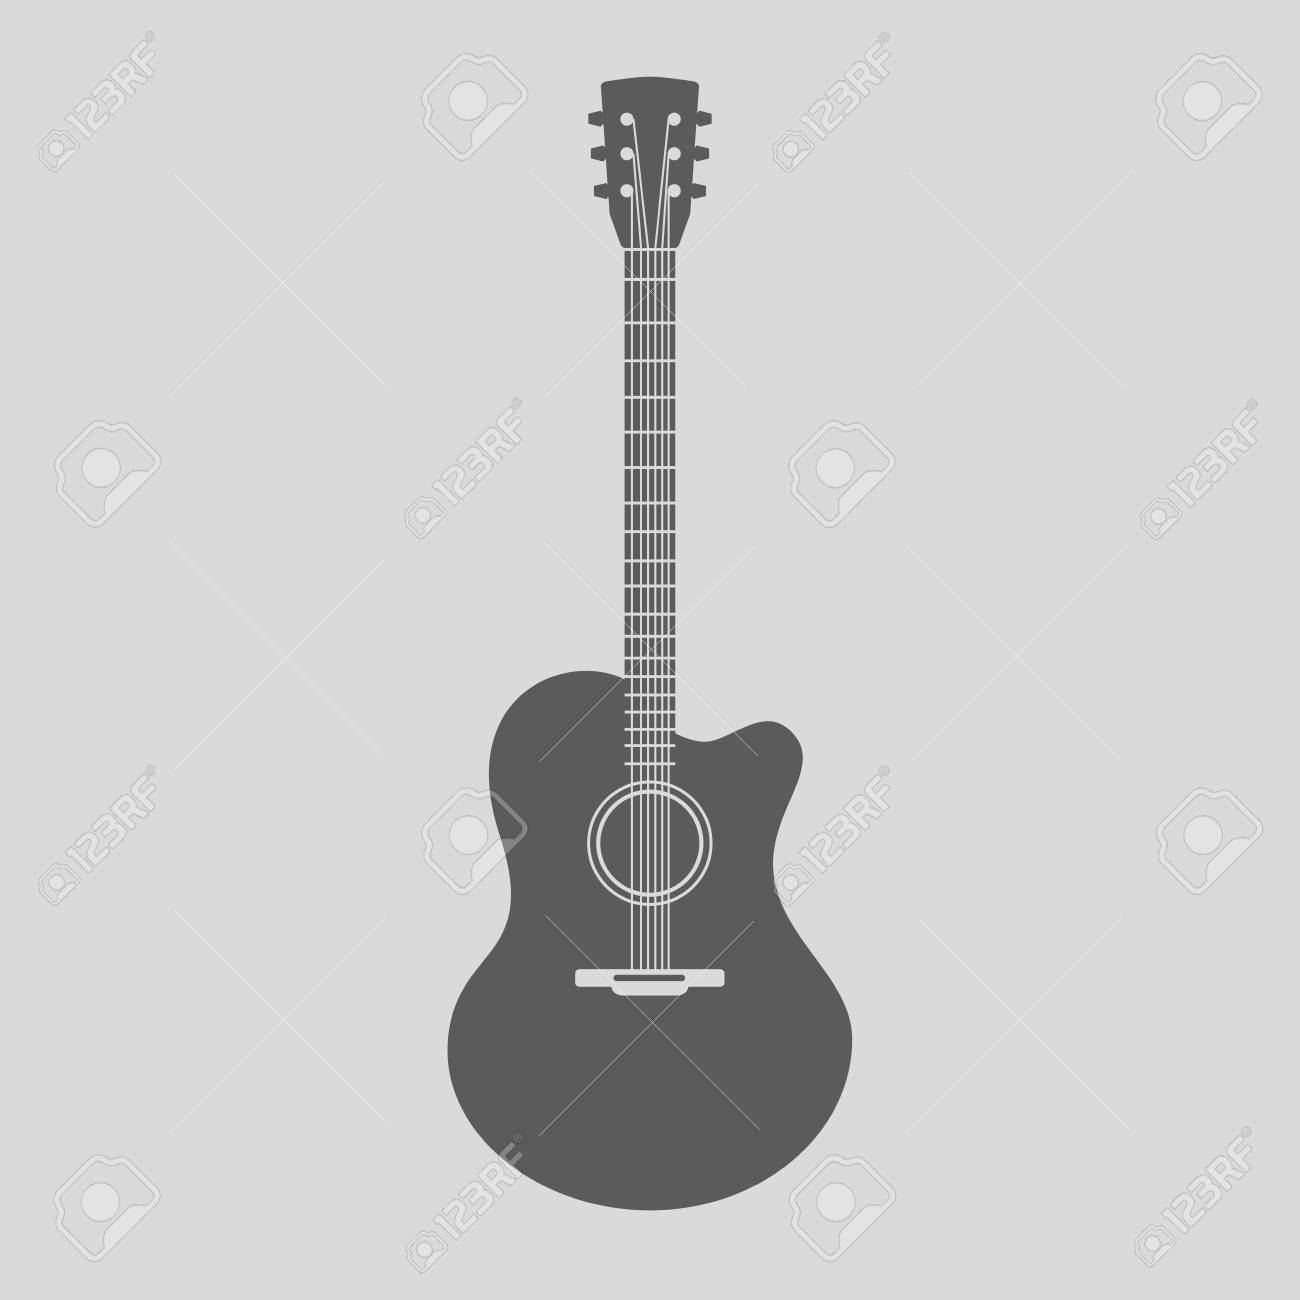 vector acoustic guitar icon gray sign with guitar silhouette